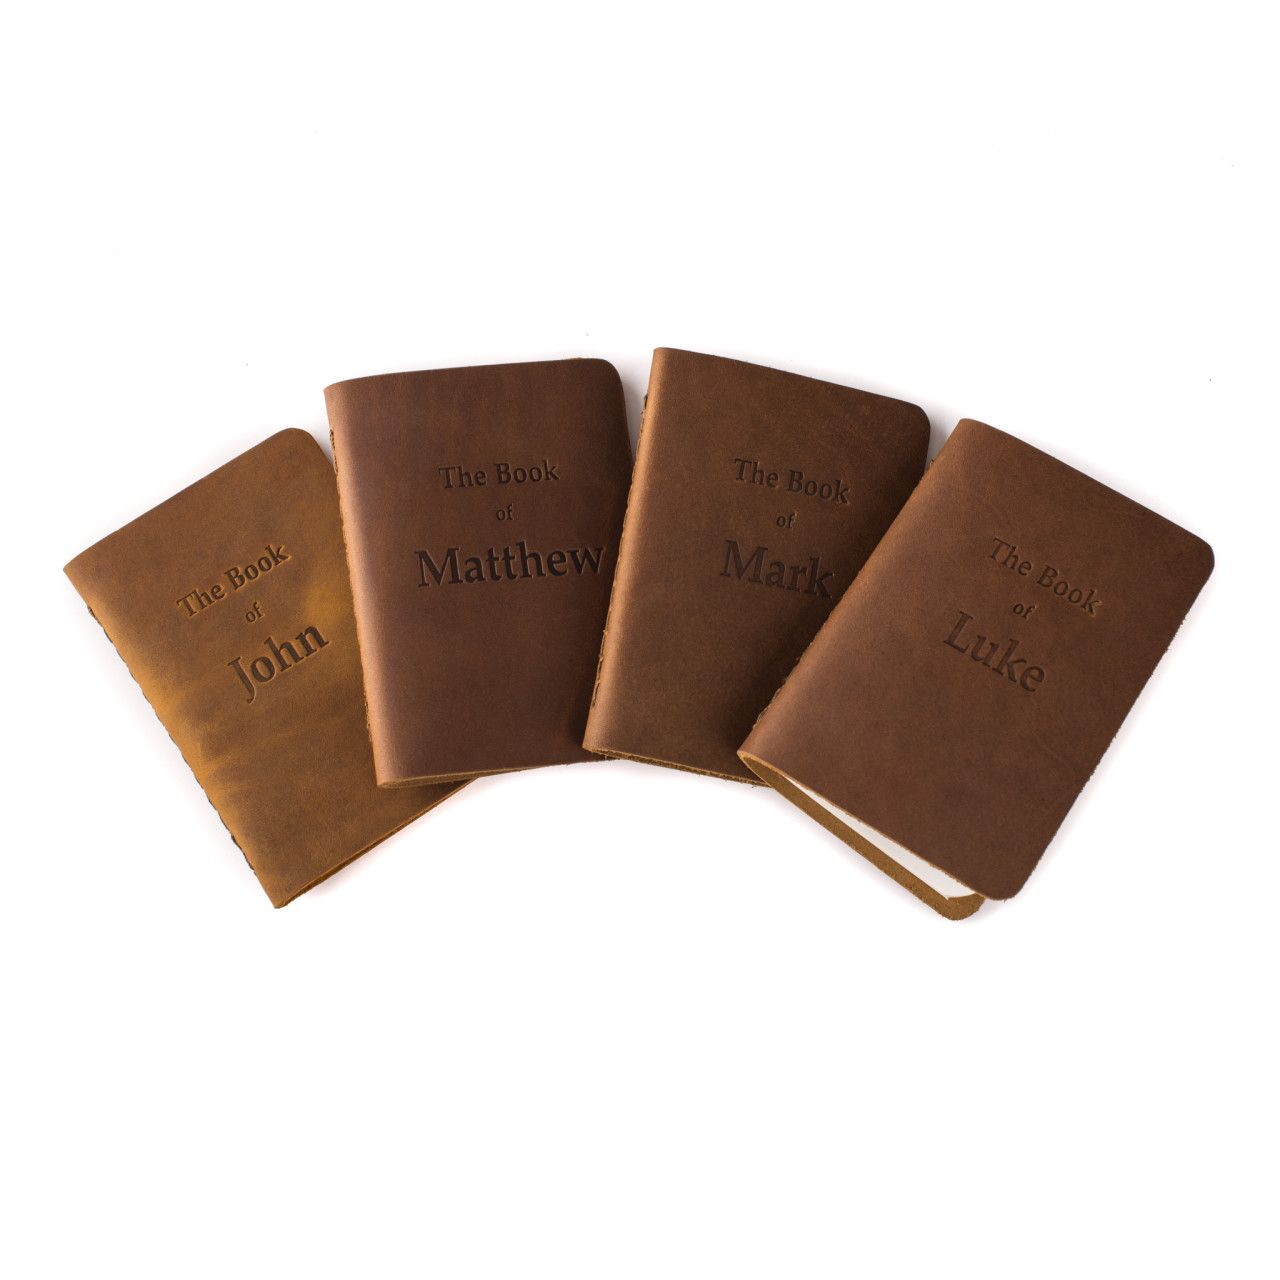 leather bound four gospels in tobacco leather